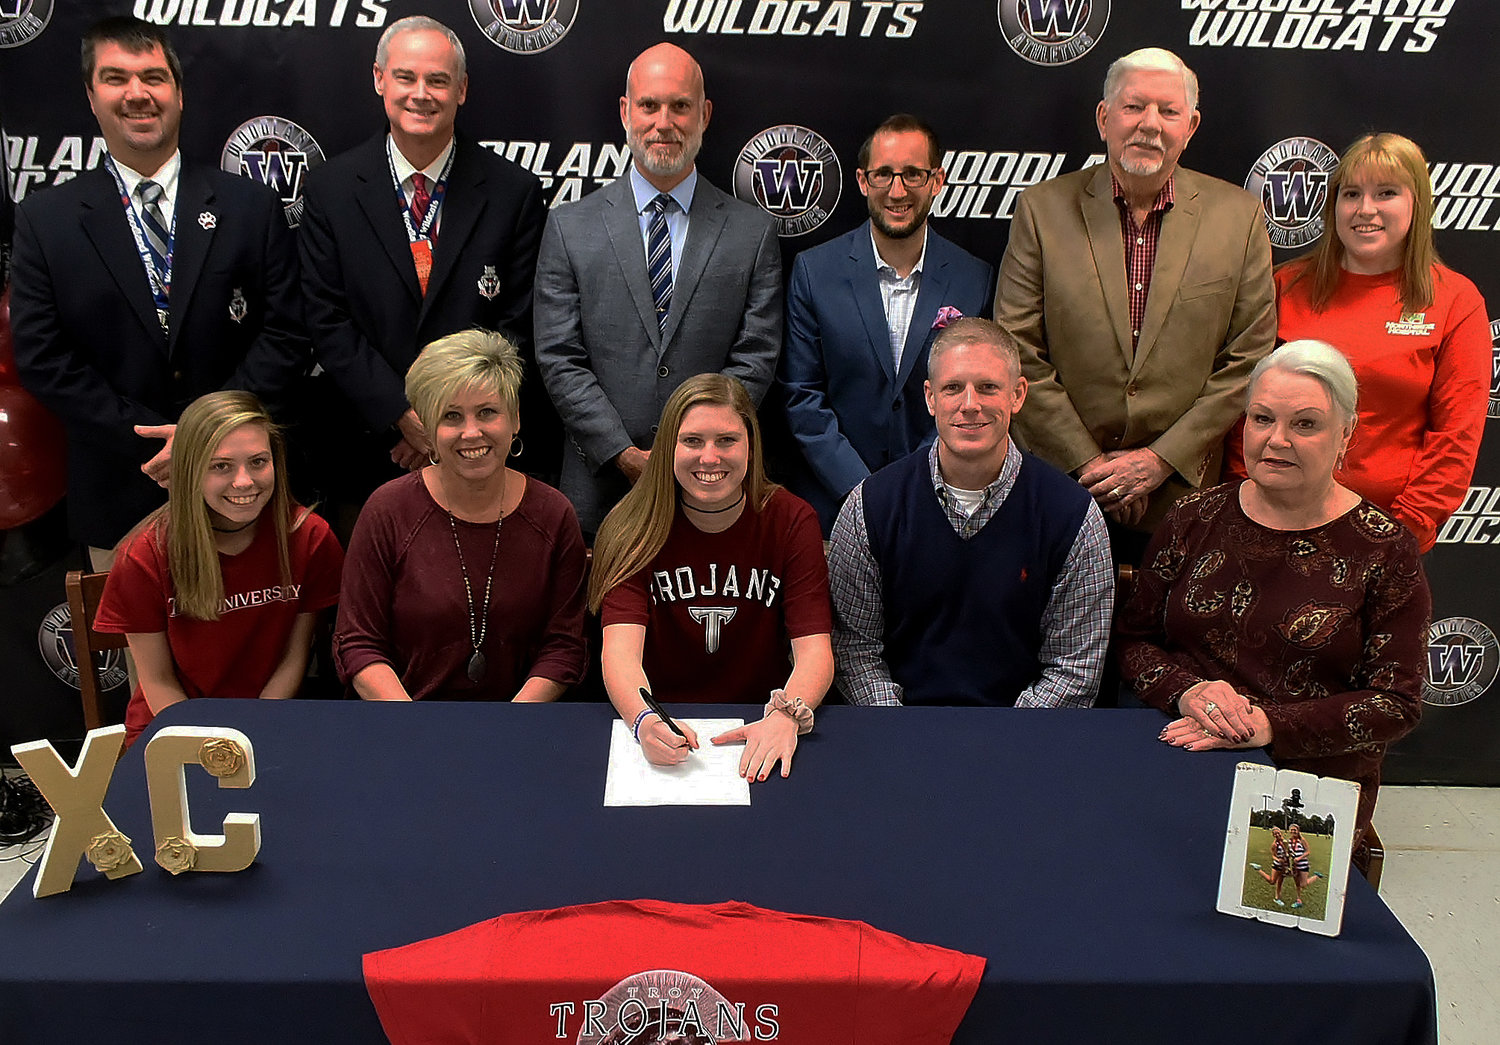 Woodland High senior Baylee Evans, center, signed Tuesday to run cross country at Troy University in Troy, Alabama. On hand for the signing were, from left, front row: Rylee Evans, sister; Stacey Evans; mother; Doug Evans, father; Glenda Evans, grandmother; back row: John Howard, WHS assistant principal and athletics director; Wes Dickey, WHS principal; Rob Forbes, WHS boys cross country coach; Matthew Landolt, WHS girls cross country coach; Ronnie Evans, grandfather; and Katie Langham, cousin.